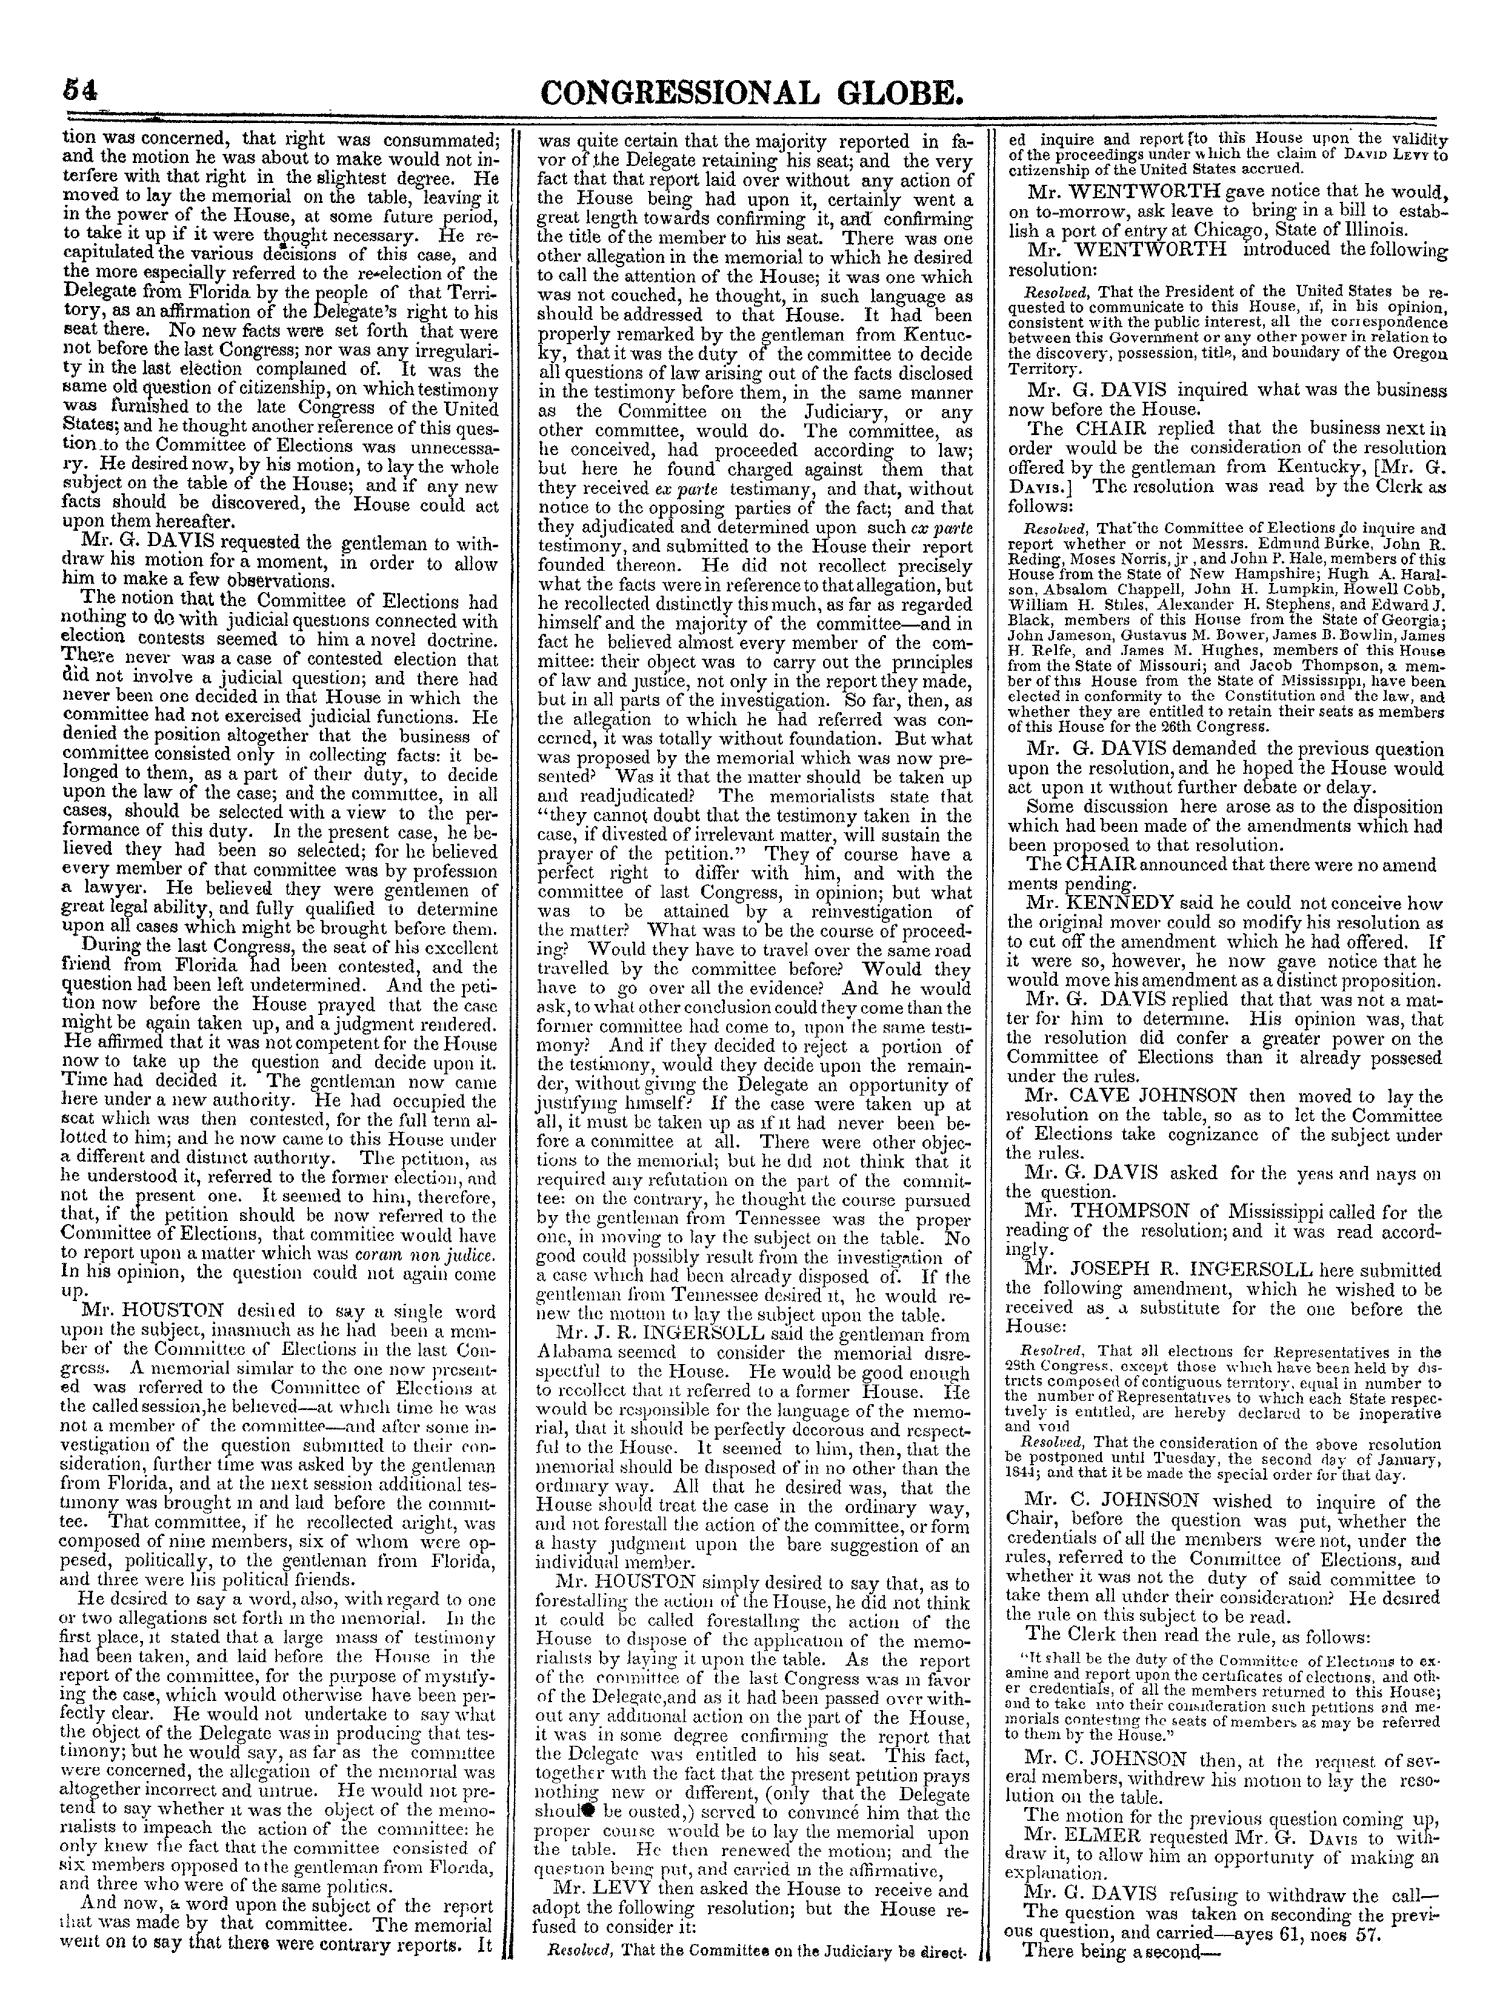 The Congressional Globe, Volume 13, Part 1: Twenty-Eighth Congress, First Session                                                                                                      54